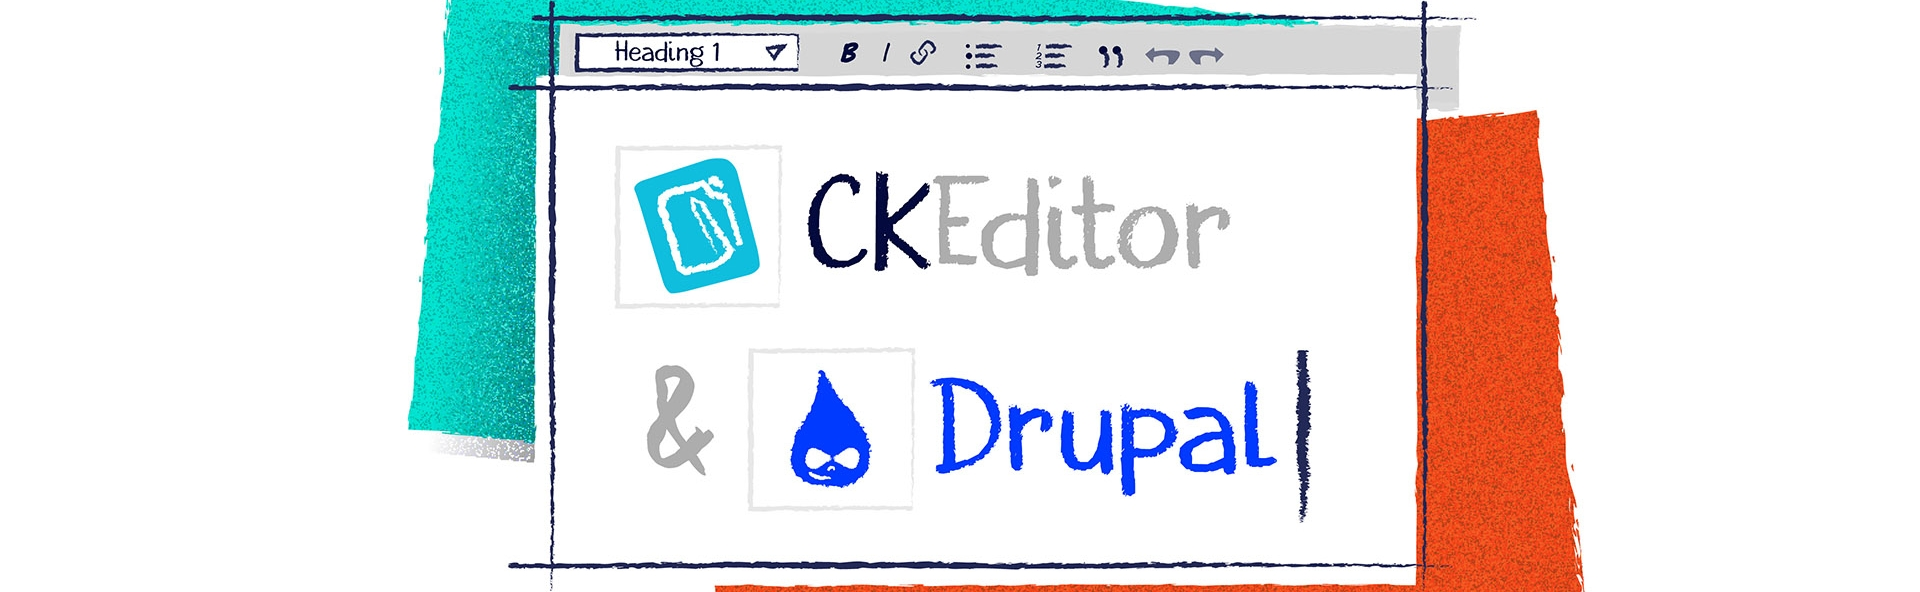 "A window similar to Drupal WYSIWYG editor with ""CKEditor"" and ""Drupal"" and Drupal logo visible on screen"